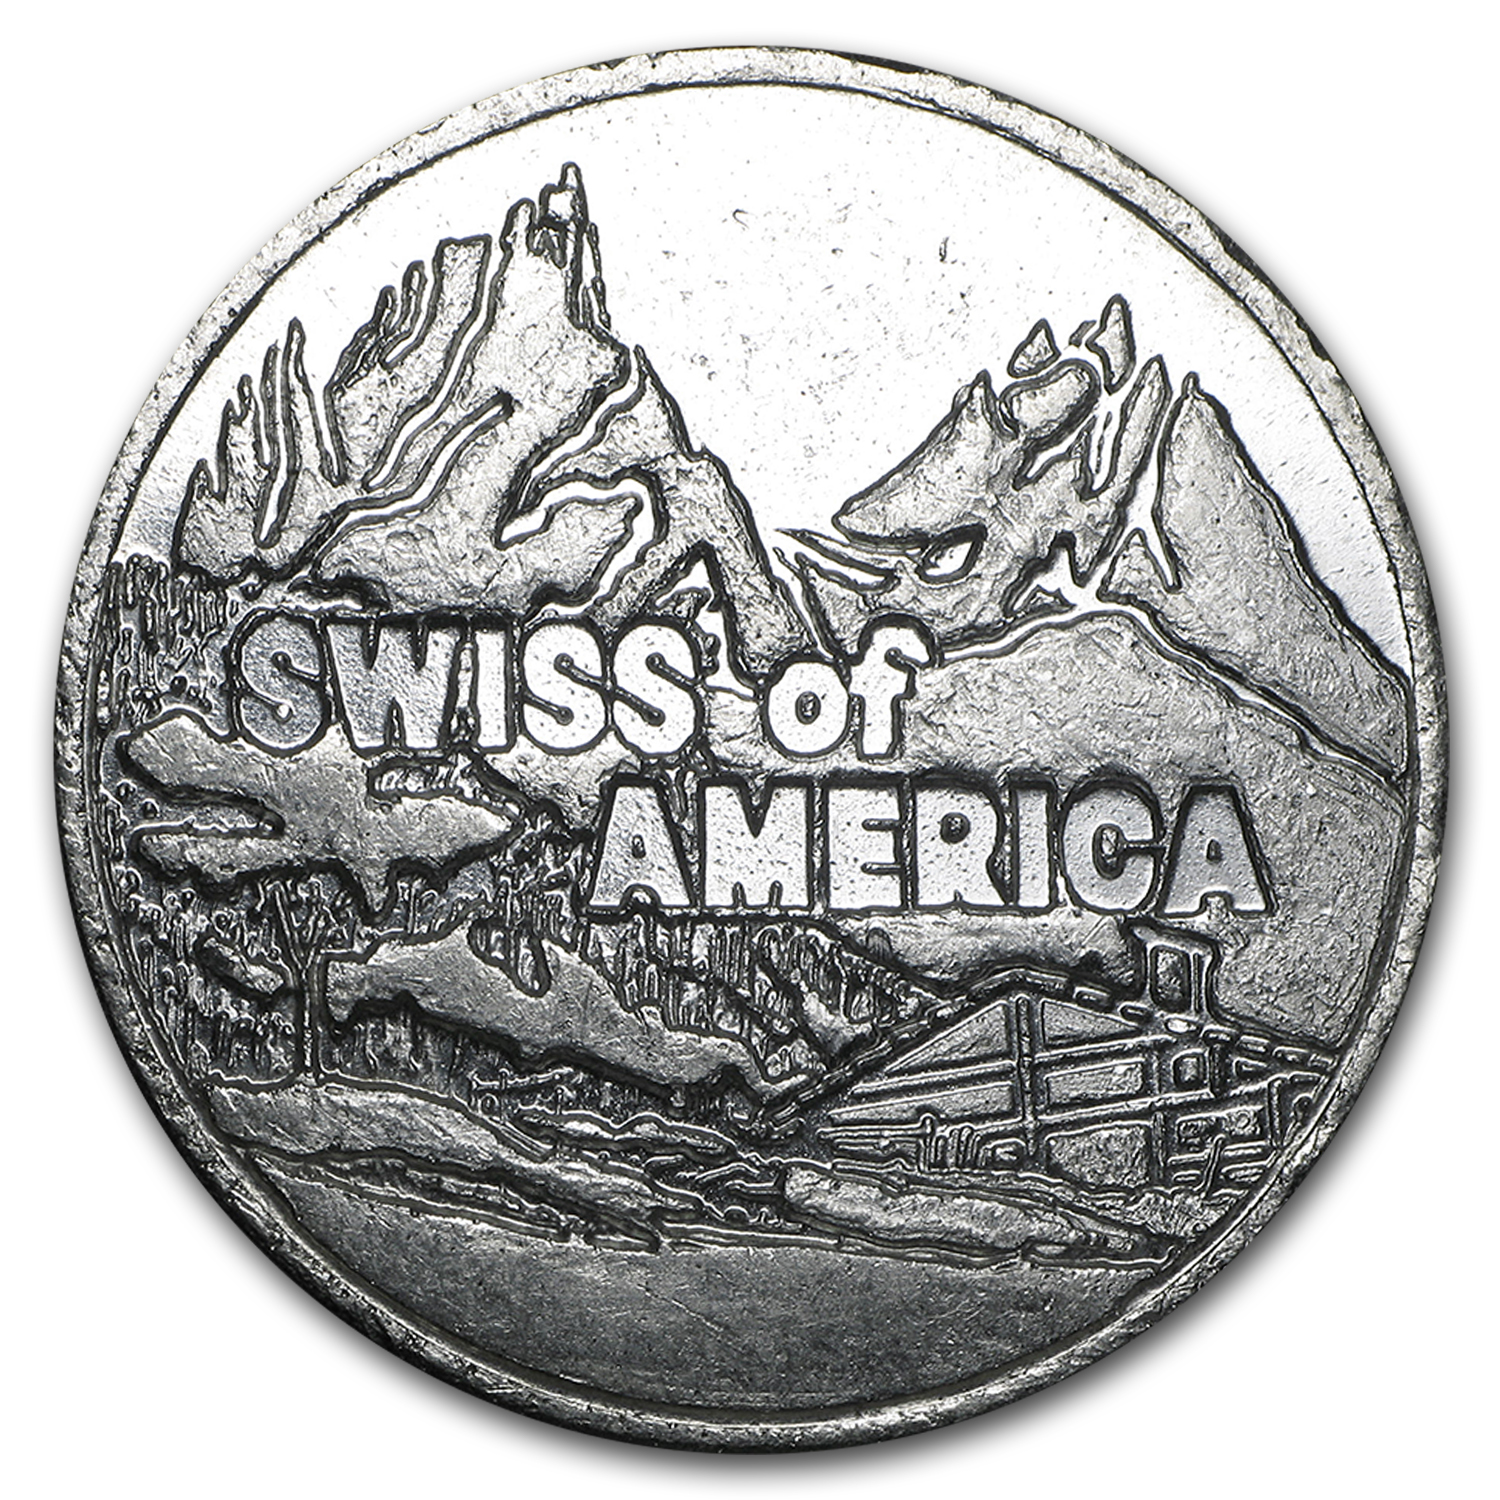 5 oz Silver Rounds - Swiss of America